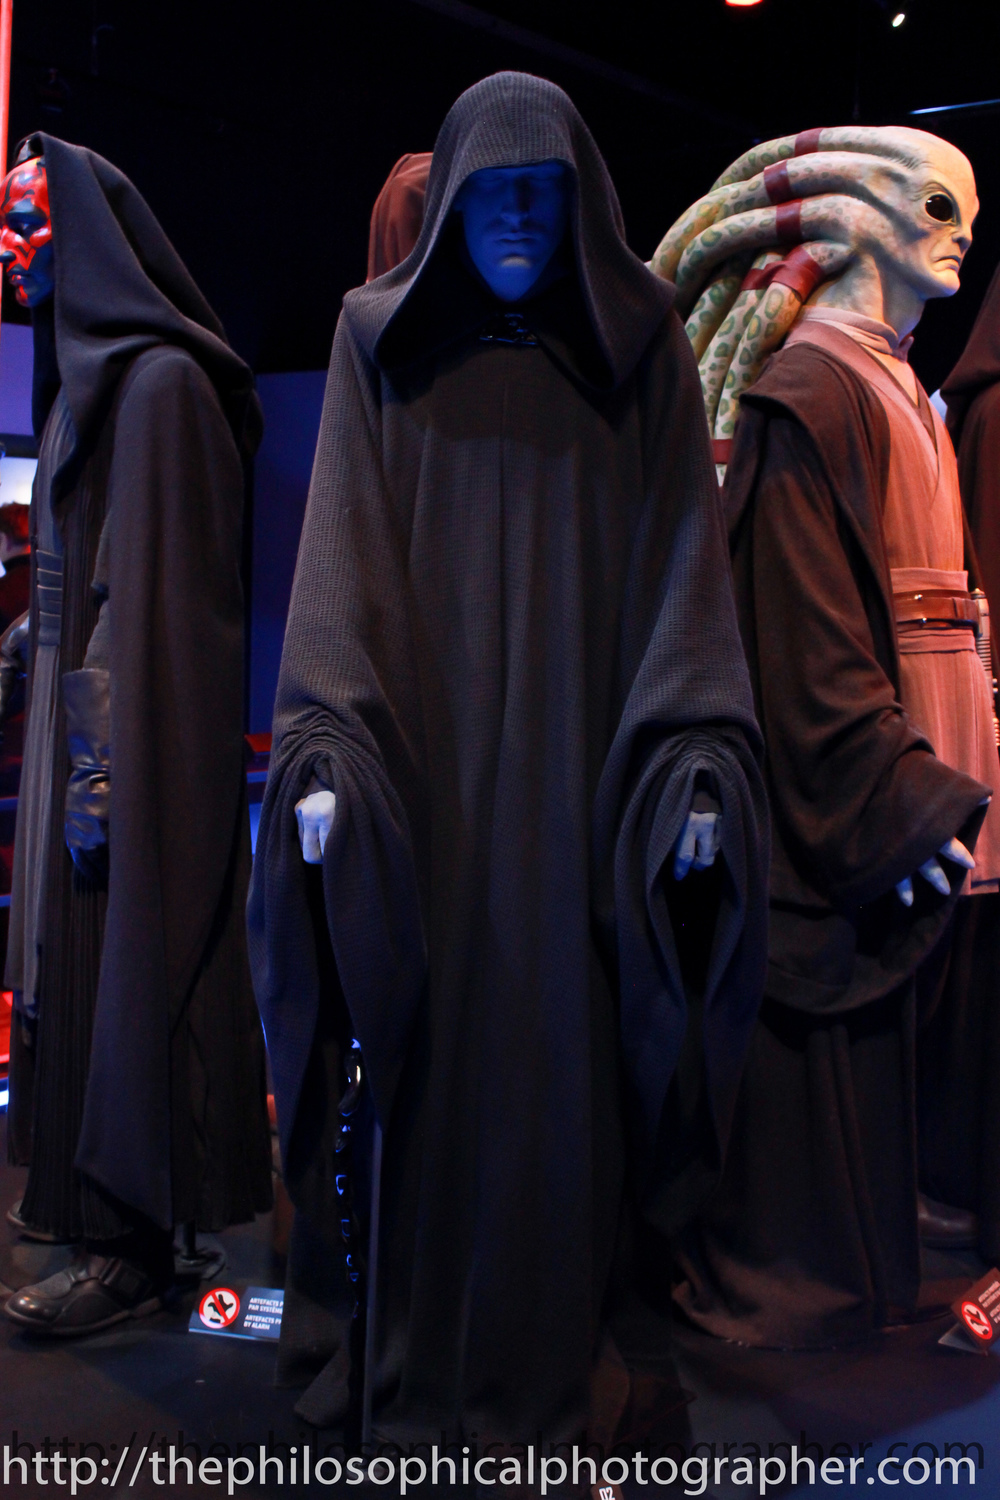 The Emperor, Sith Lord Darth Sidious